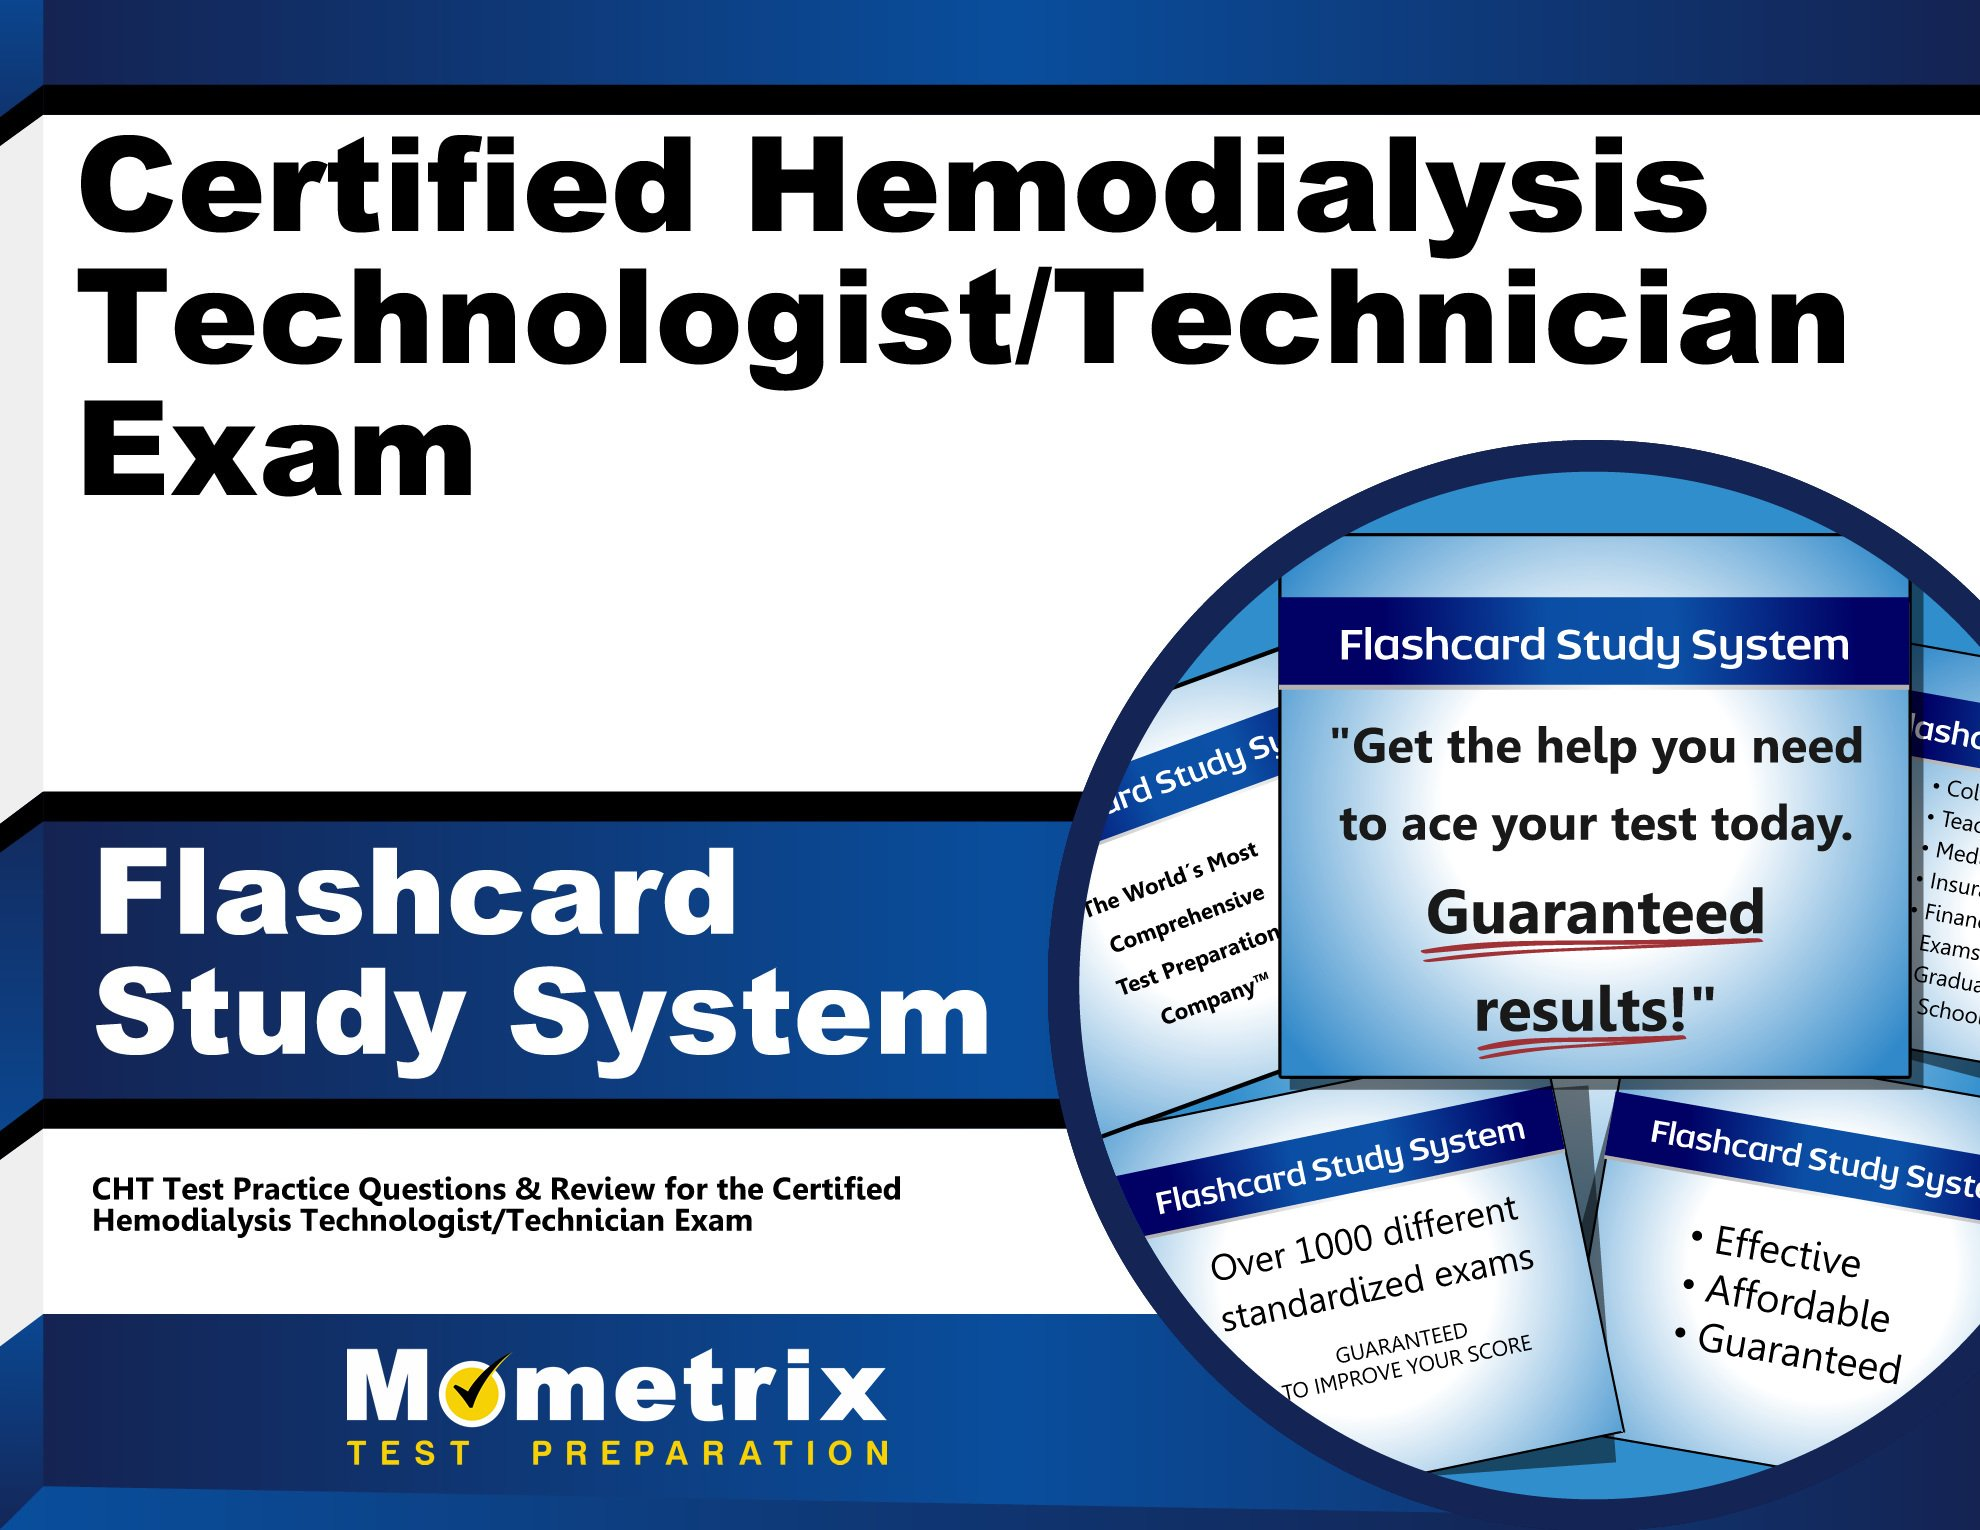 Certified Hemodialysis Technologisttechnician Exam Flashcard Study